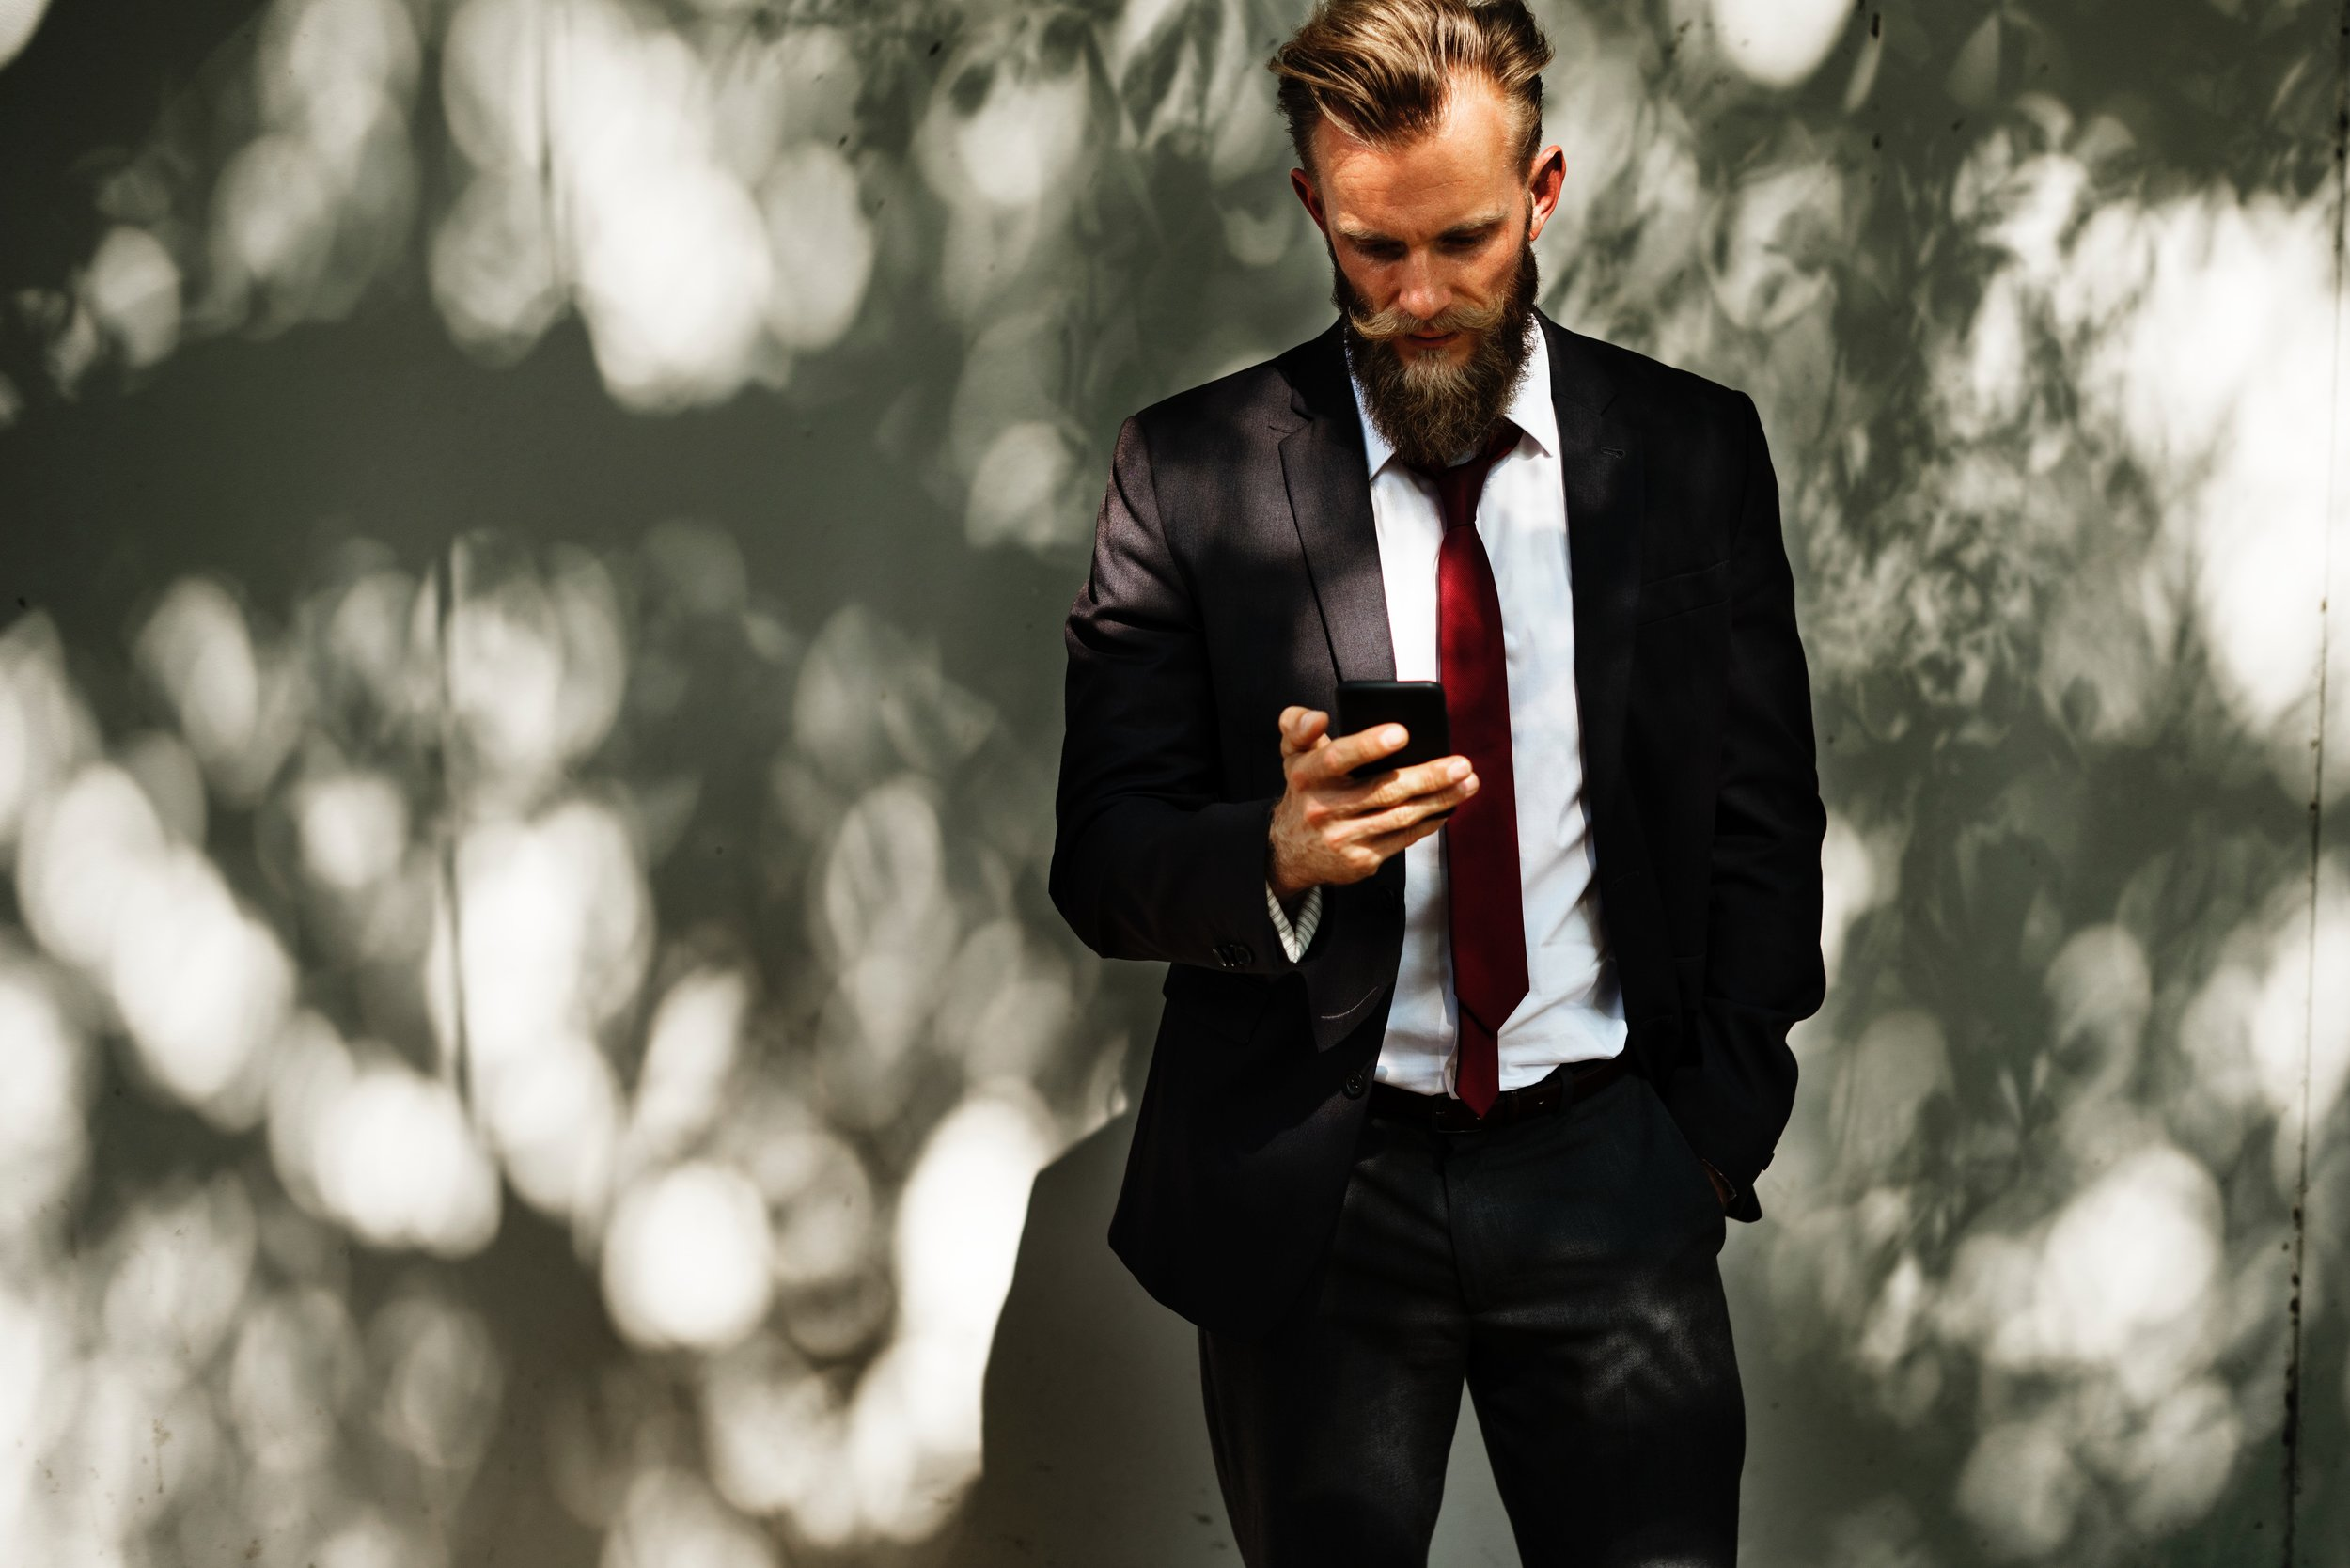 Man in suit with smart phone.jpg